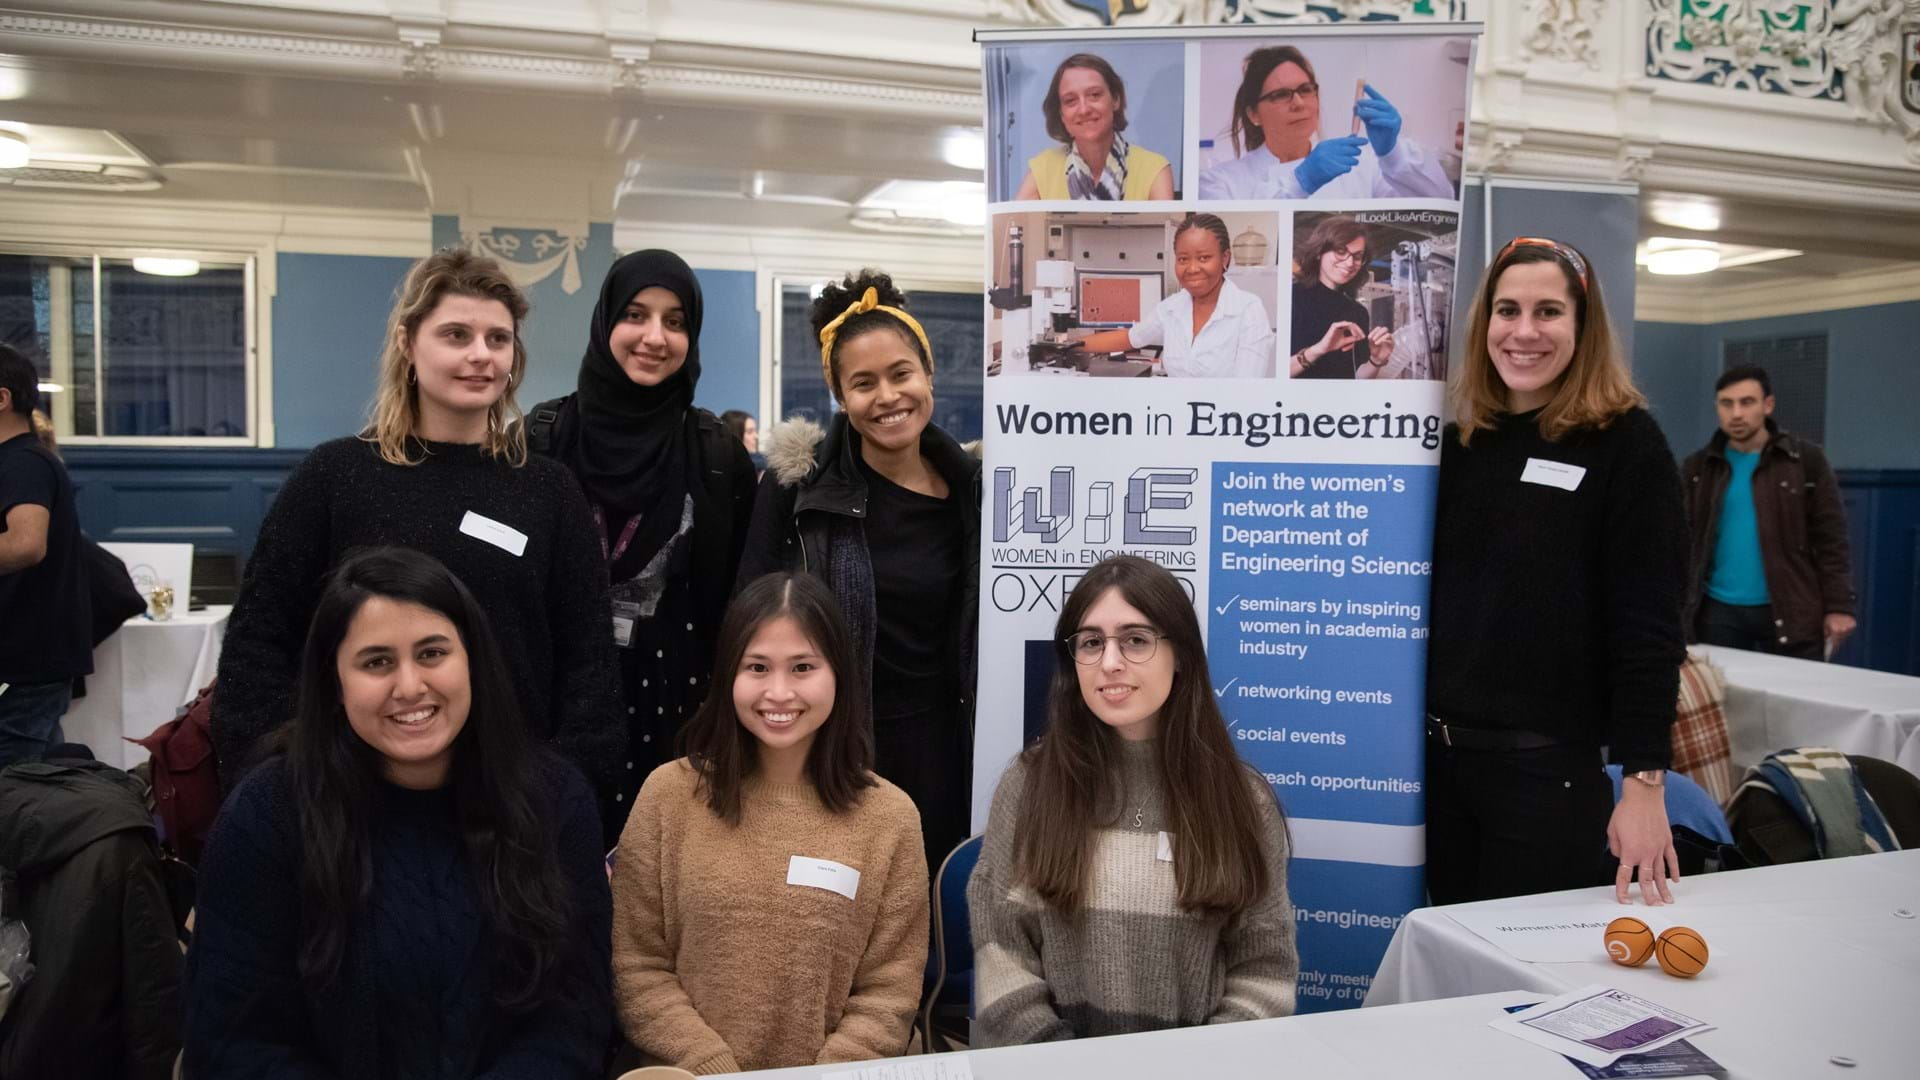 Female DPhil students at Women in STEM event in Oxford Town Hall, January 2020. Stood by Women in Engineering network banner